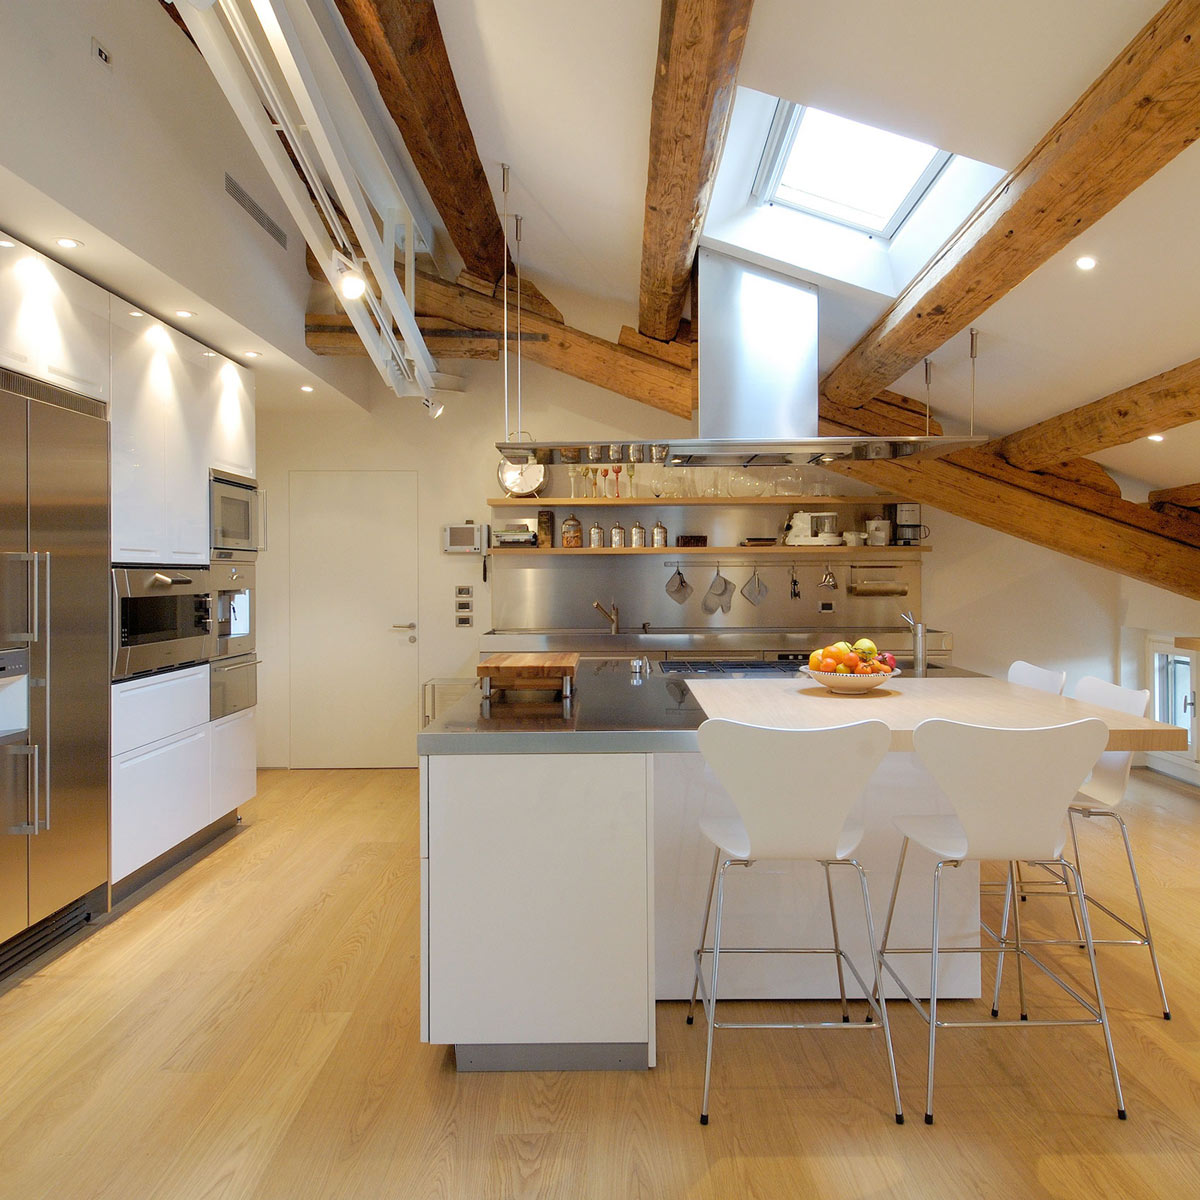 Kitchen Island, Breakfast Bar, Penthouse in Udine, Italy by Menzo Architettura & Design